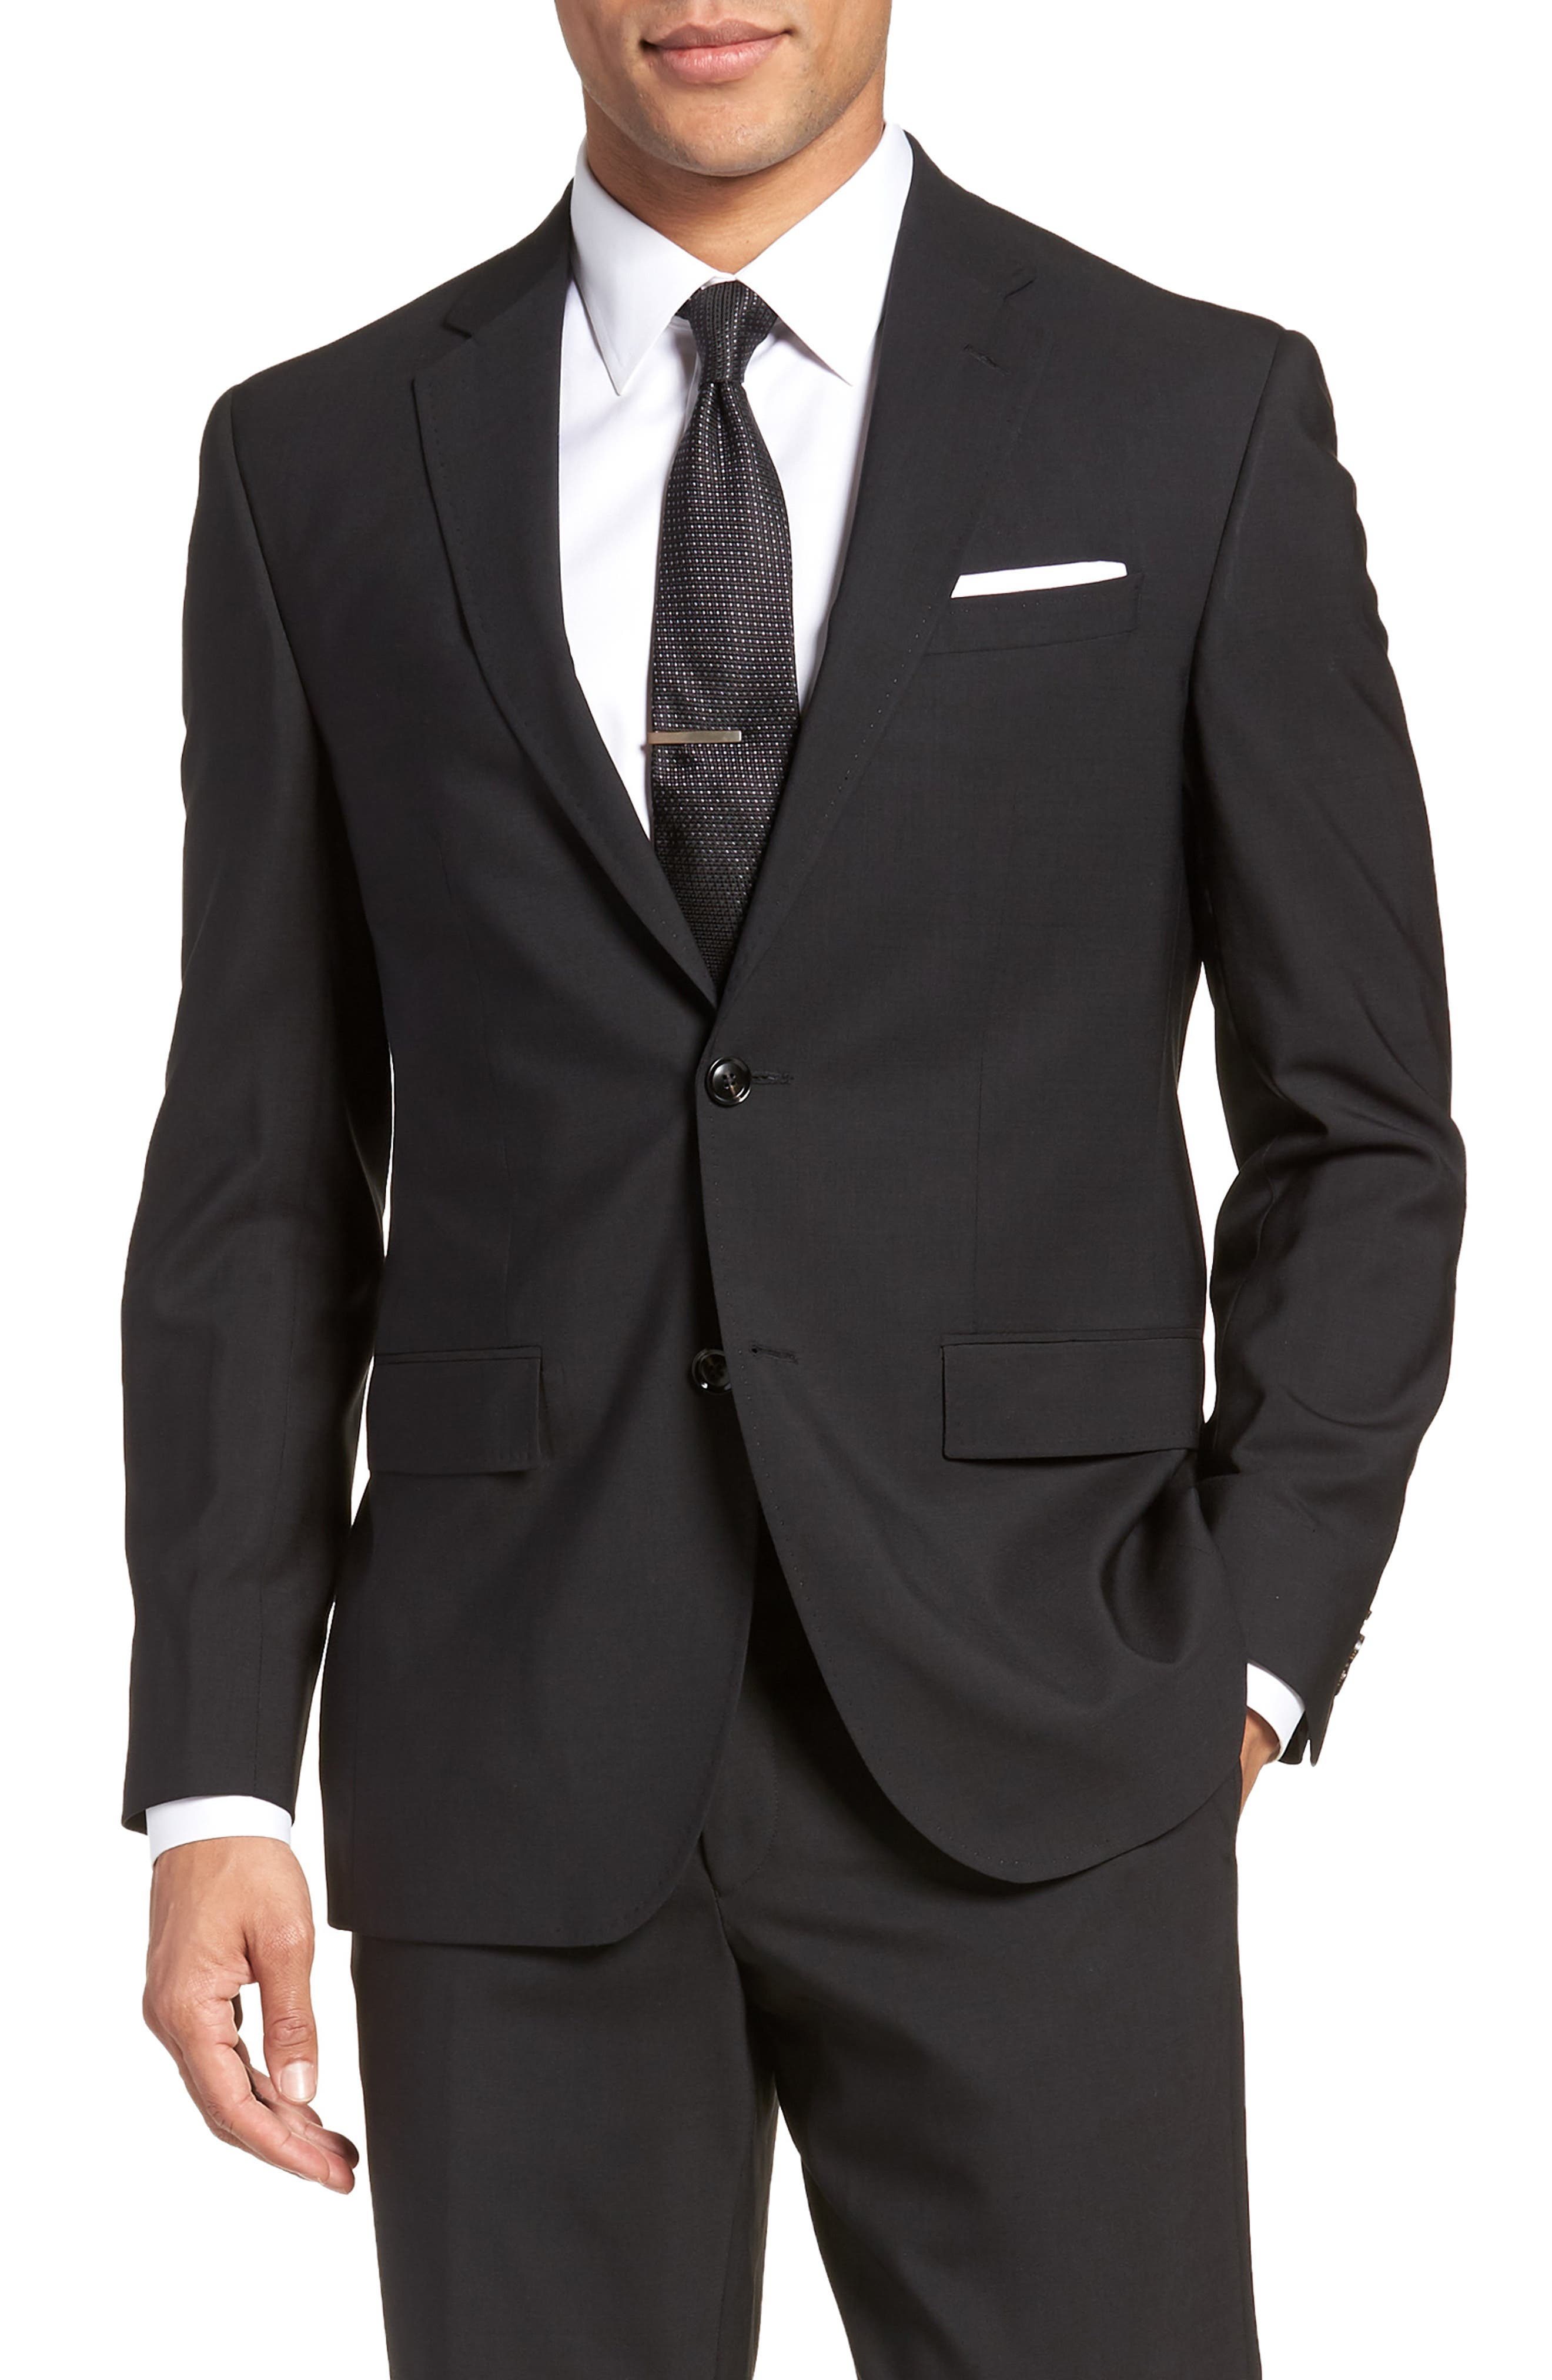 TED BAKER LONDON, Jay Trim Fit Solid Wool Suit, Alternate thumbnail 5, color, BLACK